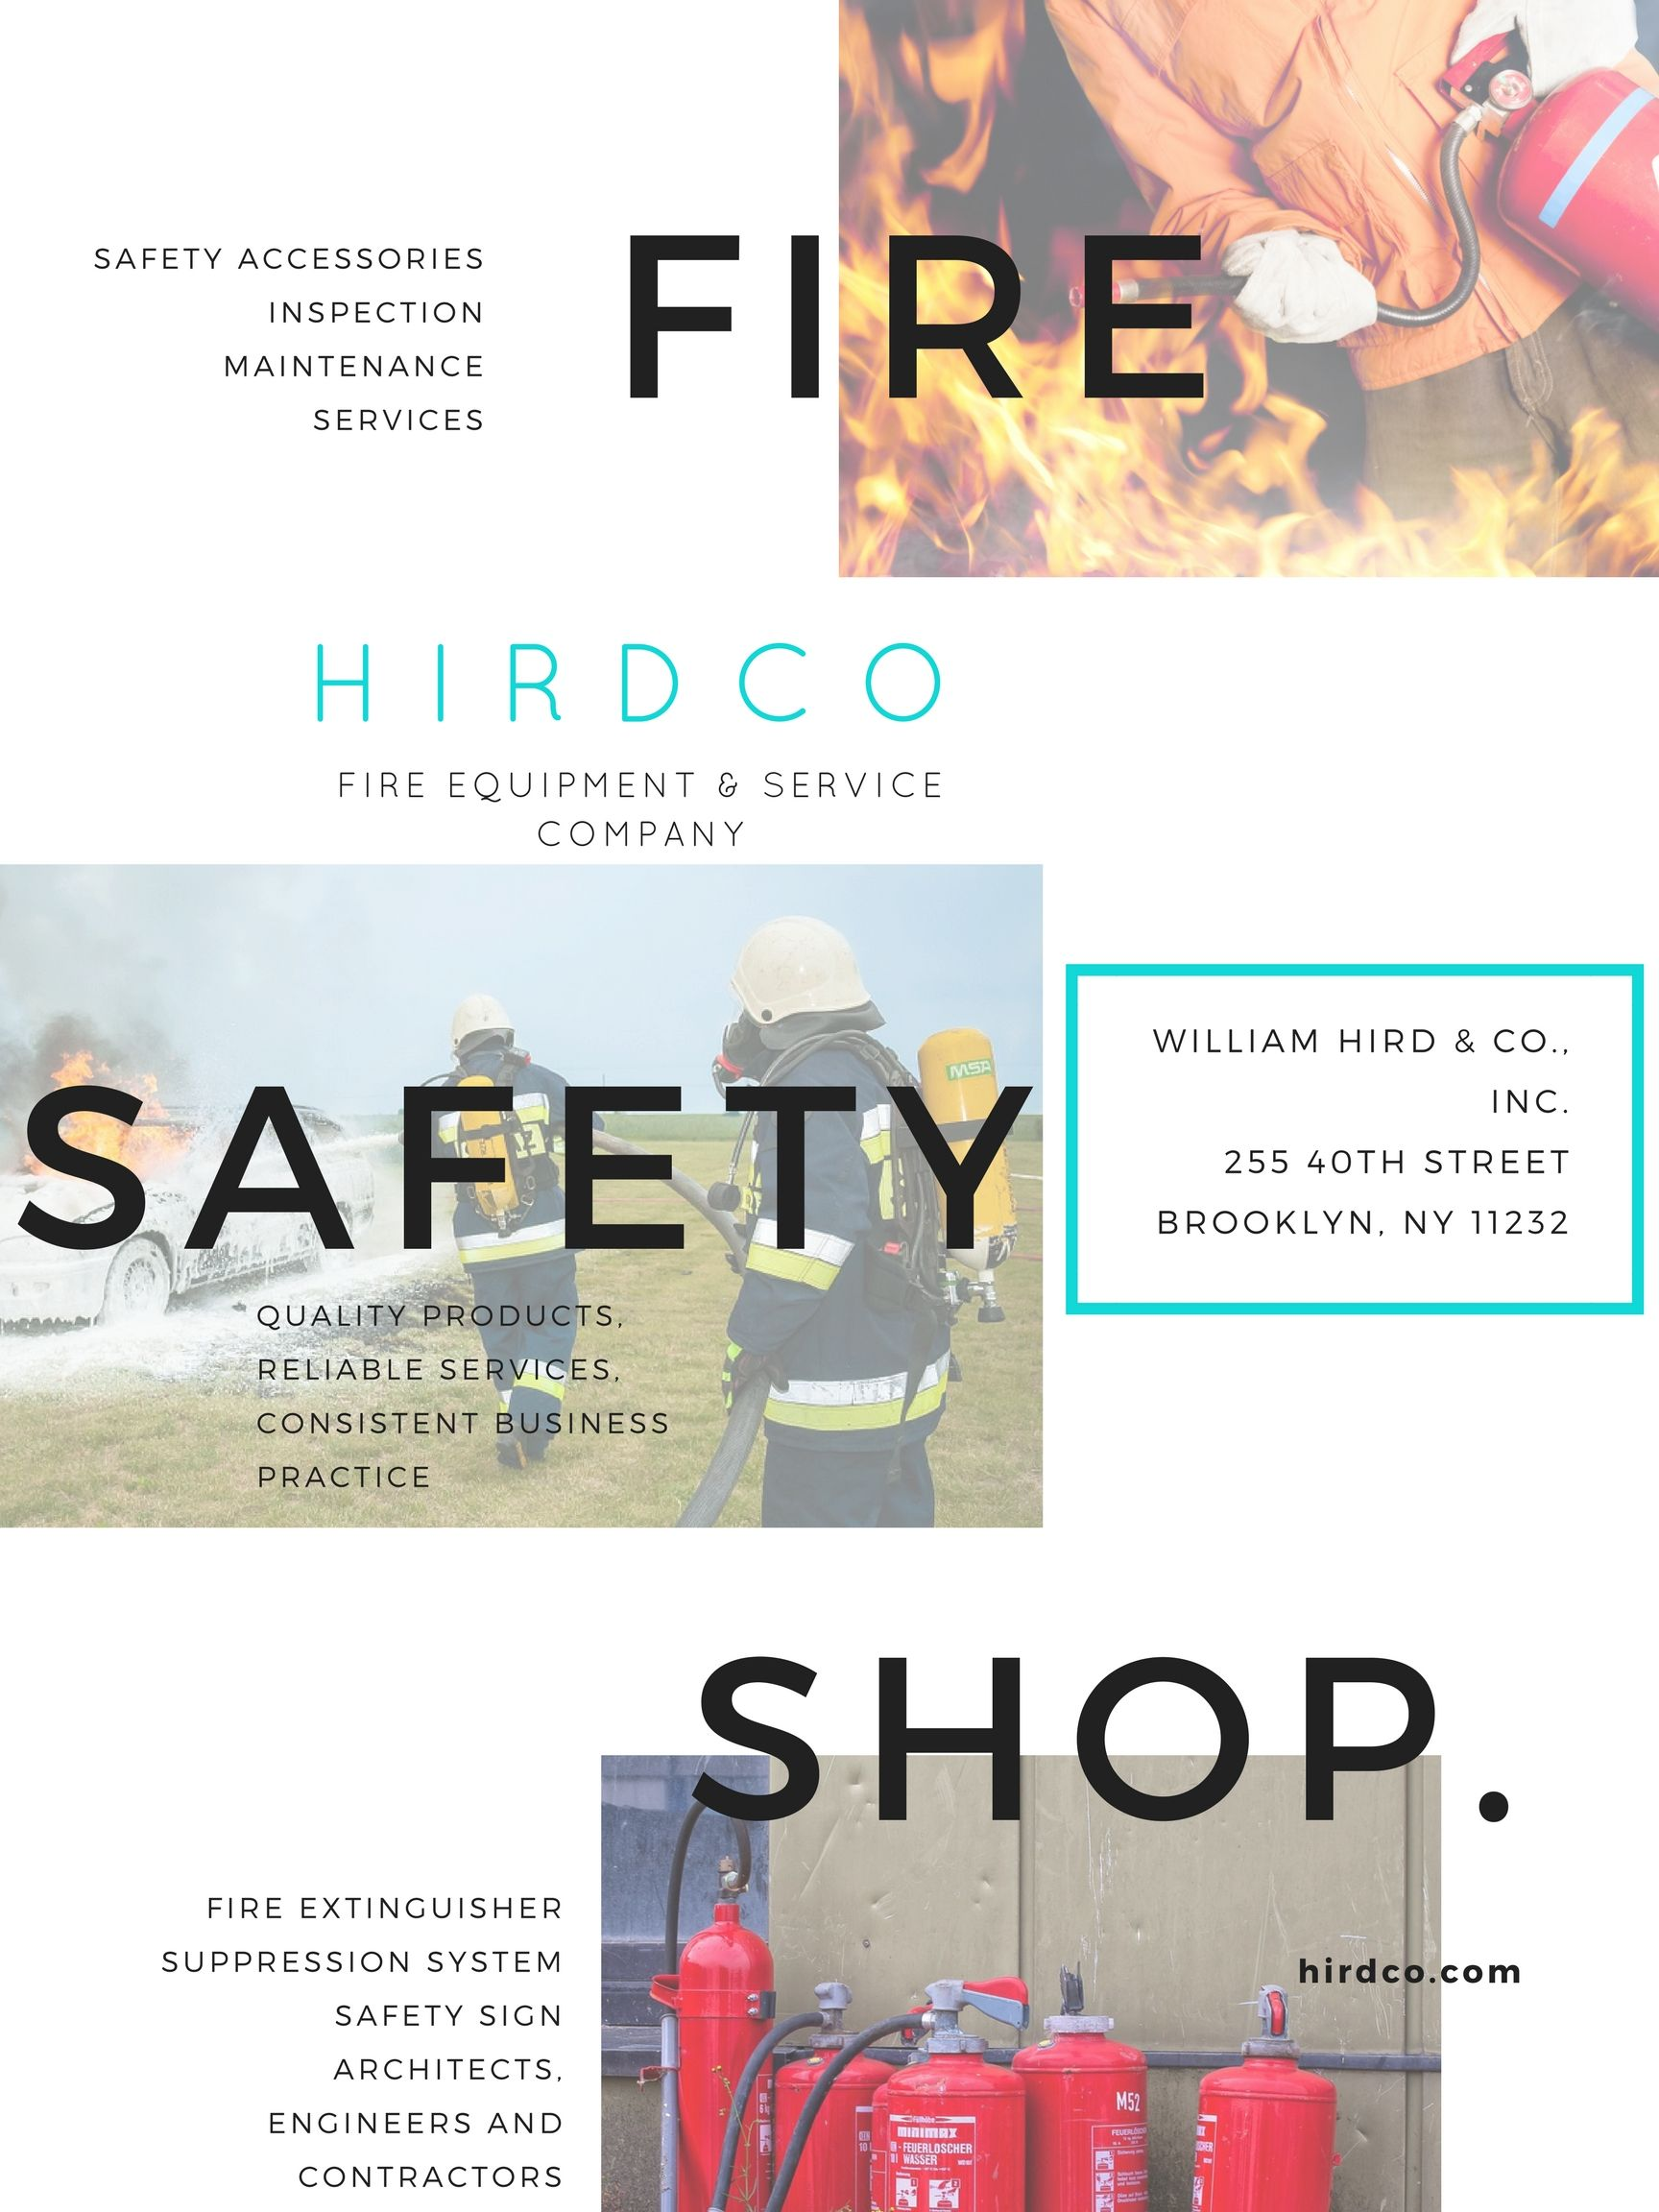 Contact us William Hird & Co. Fire safety tips, Fire